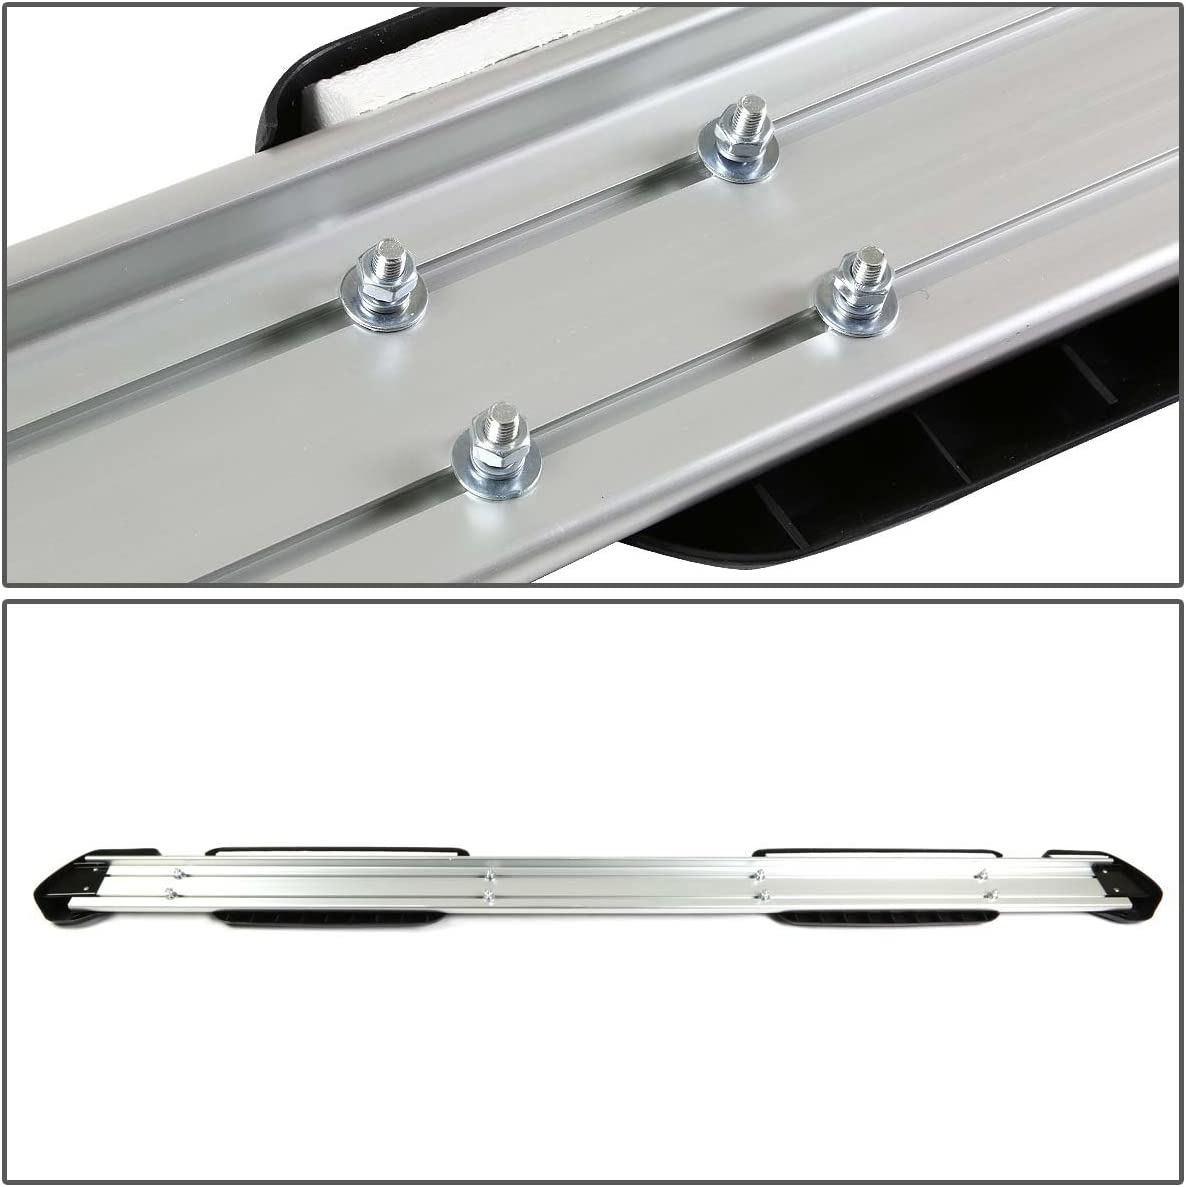 For 07-18 Tundra 2nd Gen Crewmax Pair of 5.25 inches Brushed OE Style Side Nerf Step Bar Running Boards